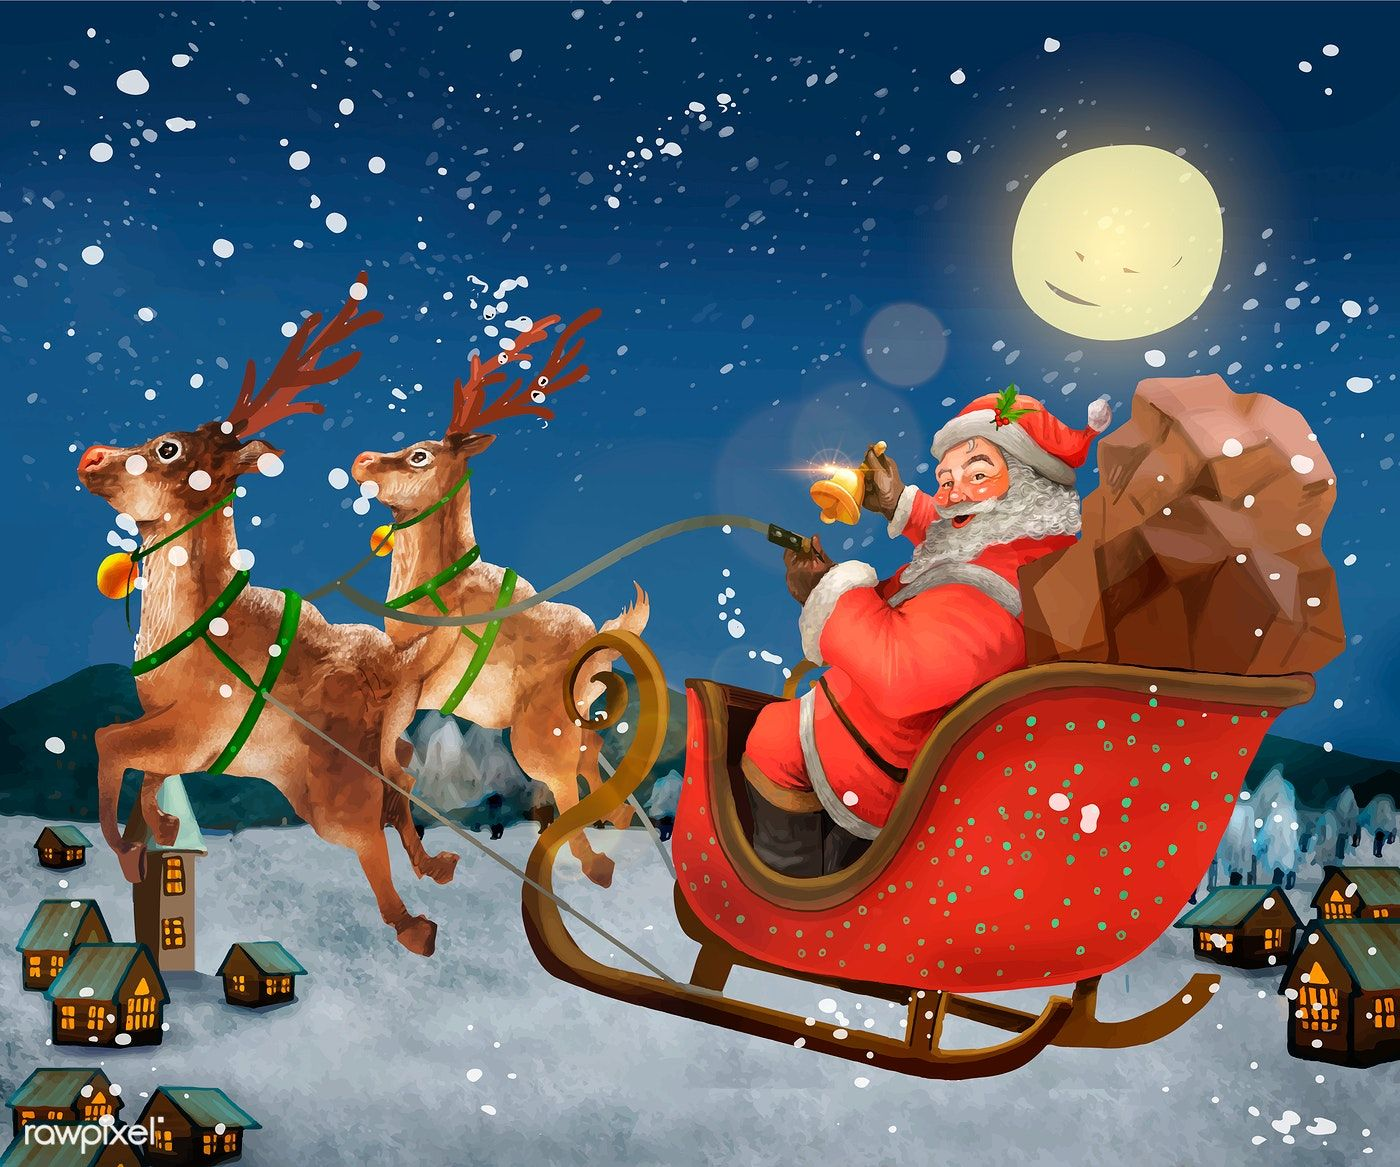 Hand drawn santa claus riding a sleigh delivering presents